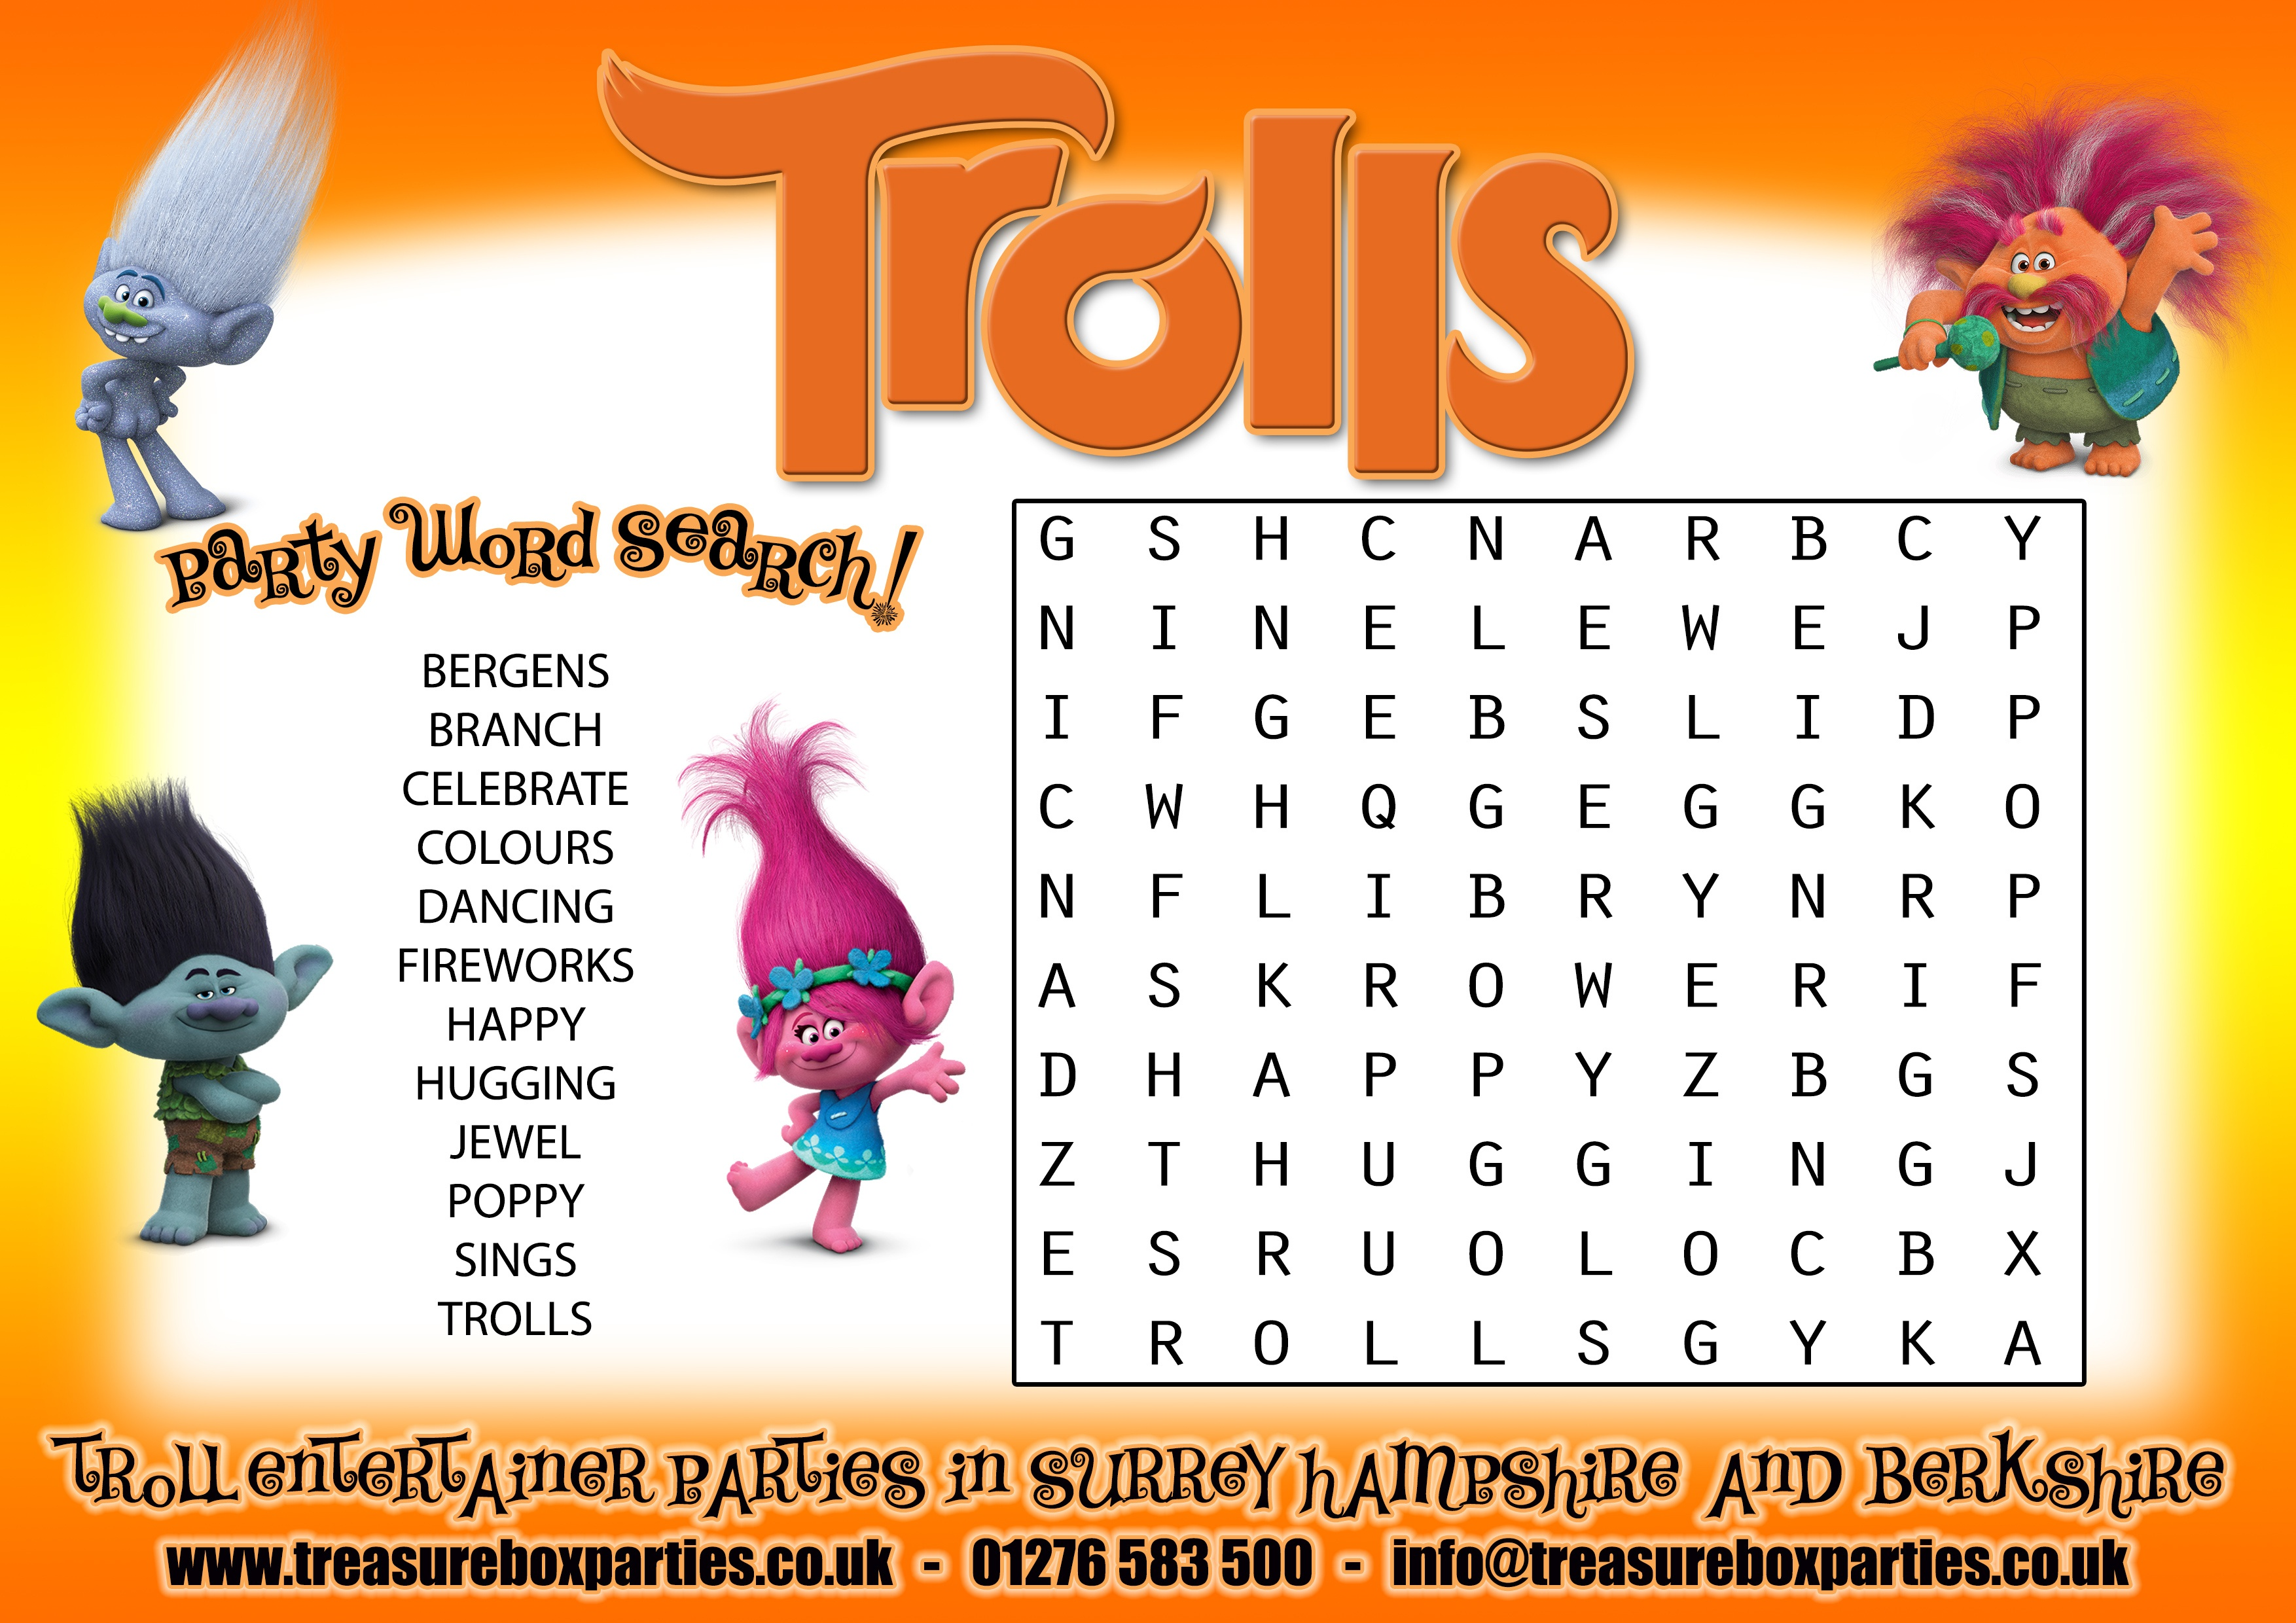 Trolls Free Printables (86+ Images In Collection) Page 1 - Free Trolls Printables